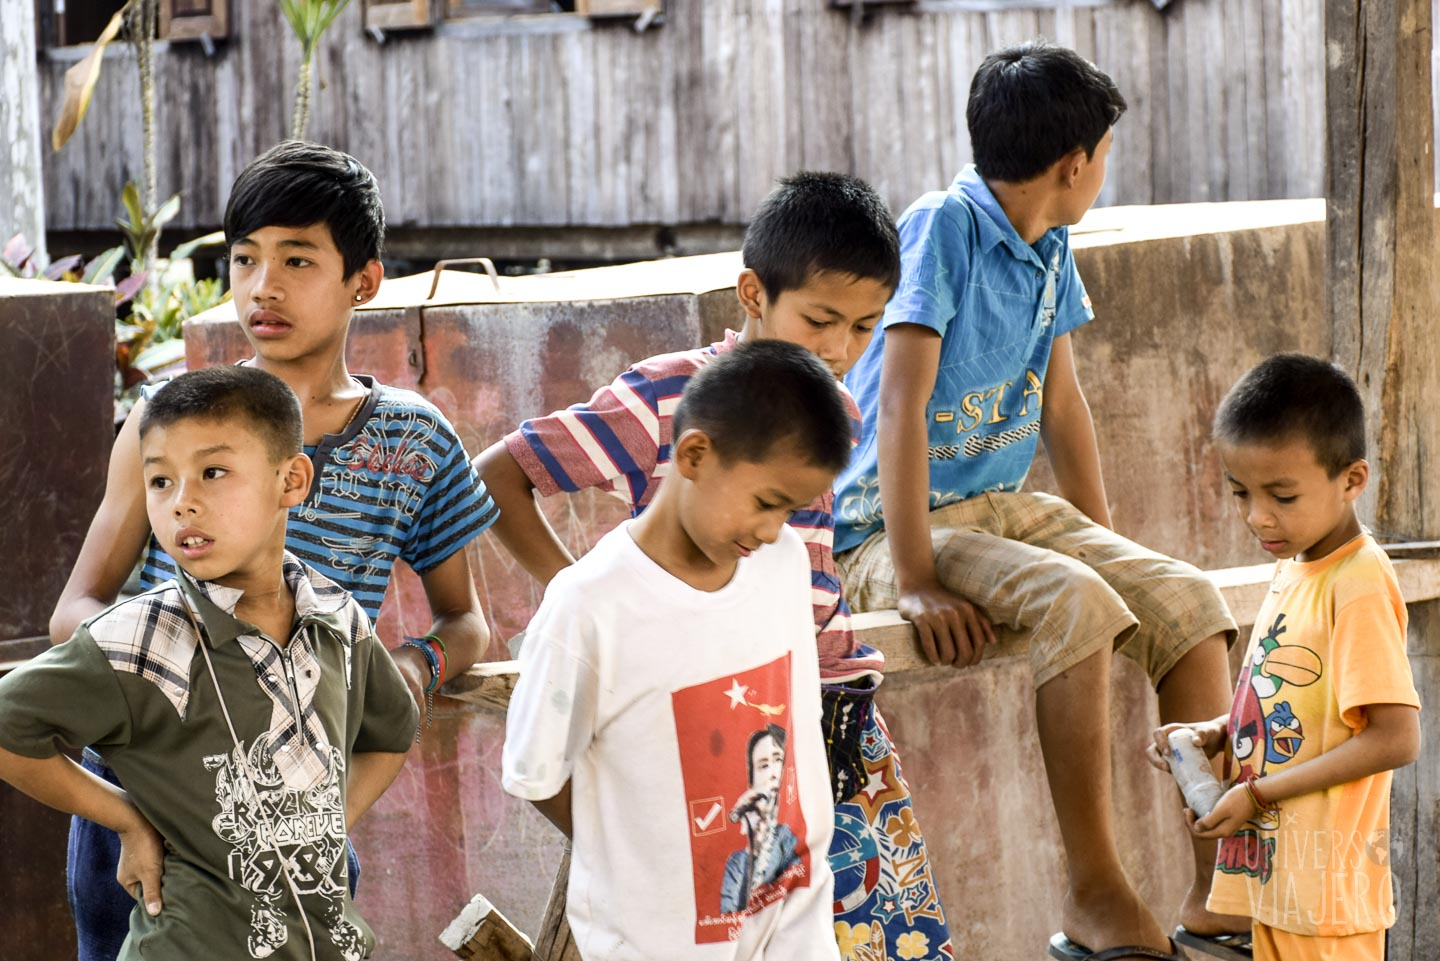 Kids in Inle Lake, Myanmar